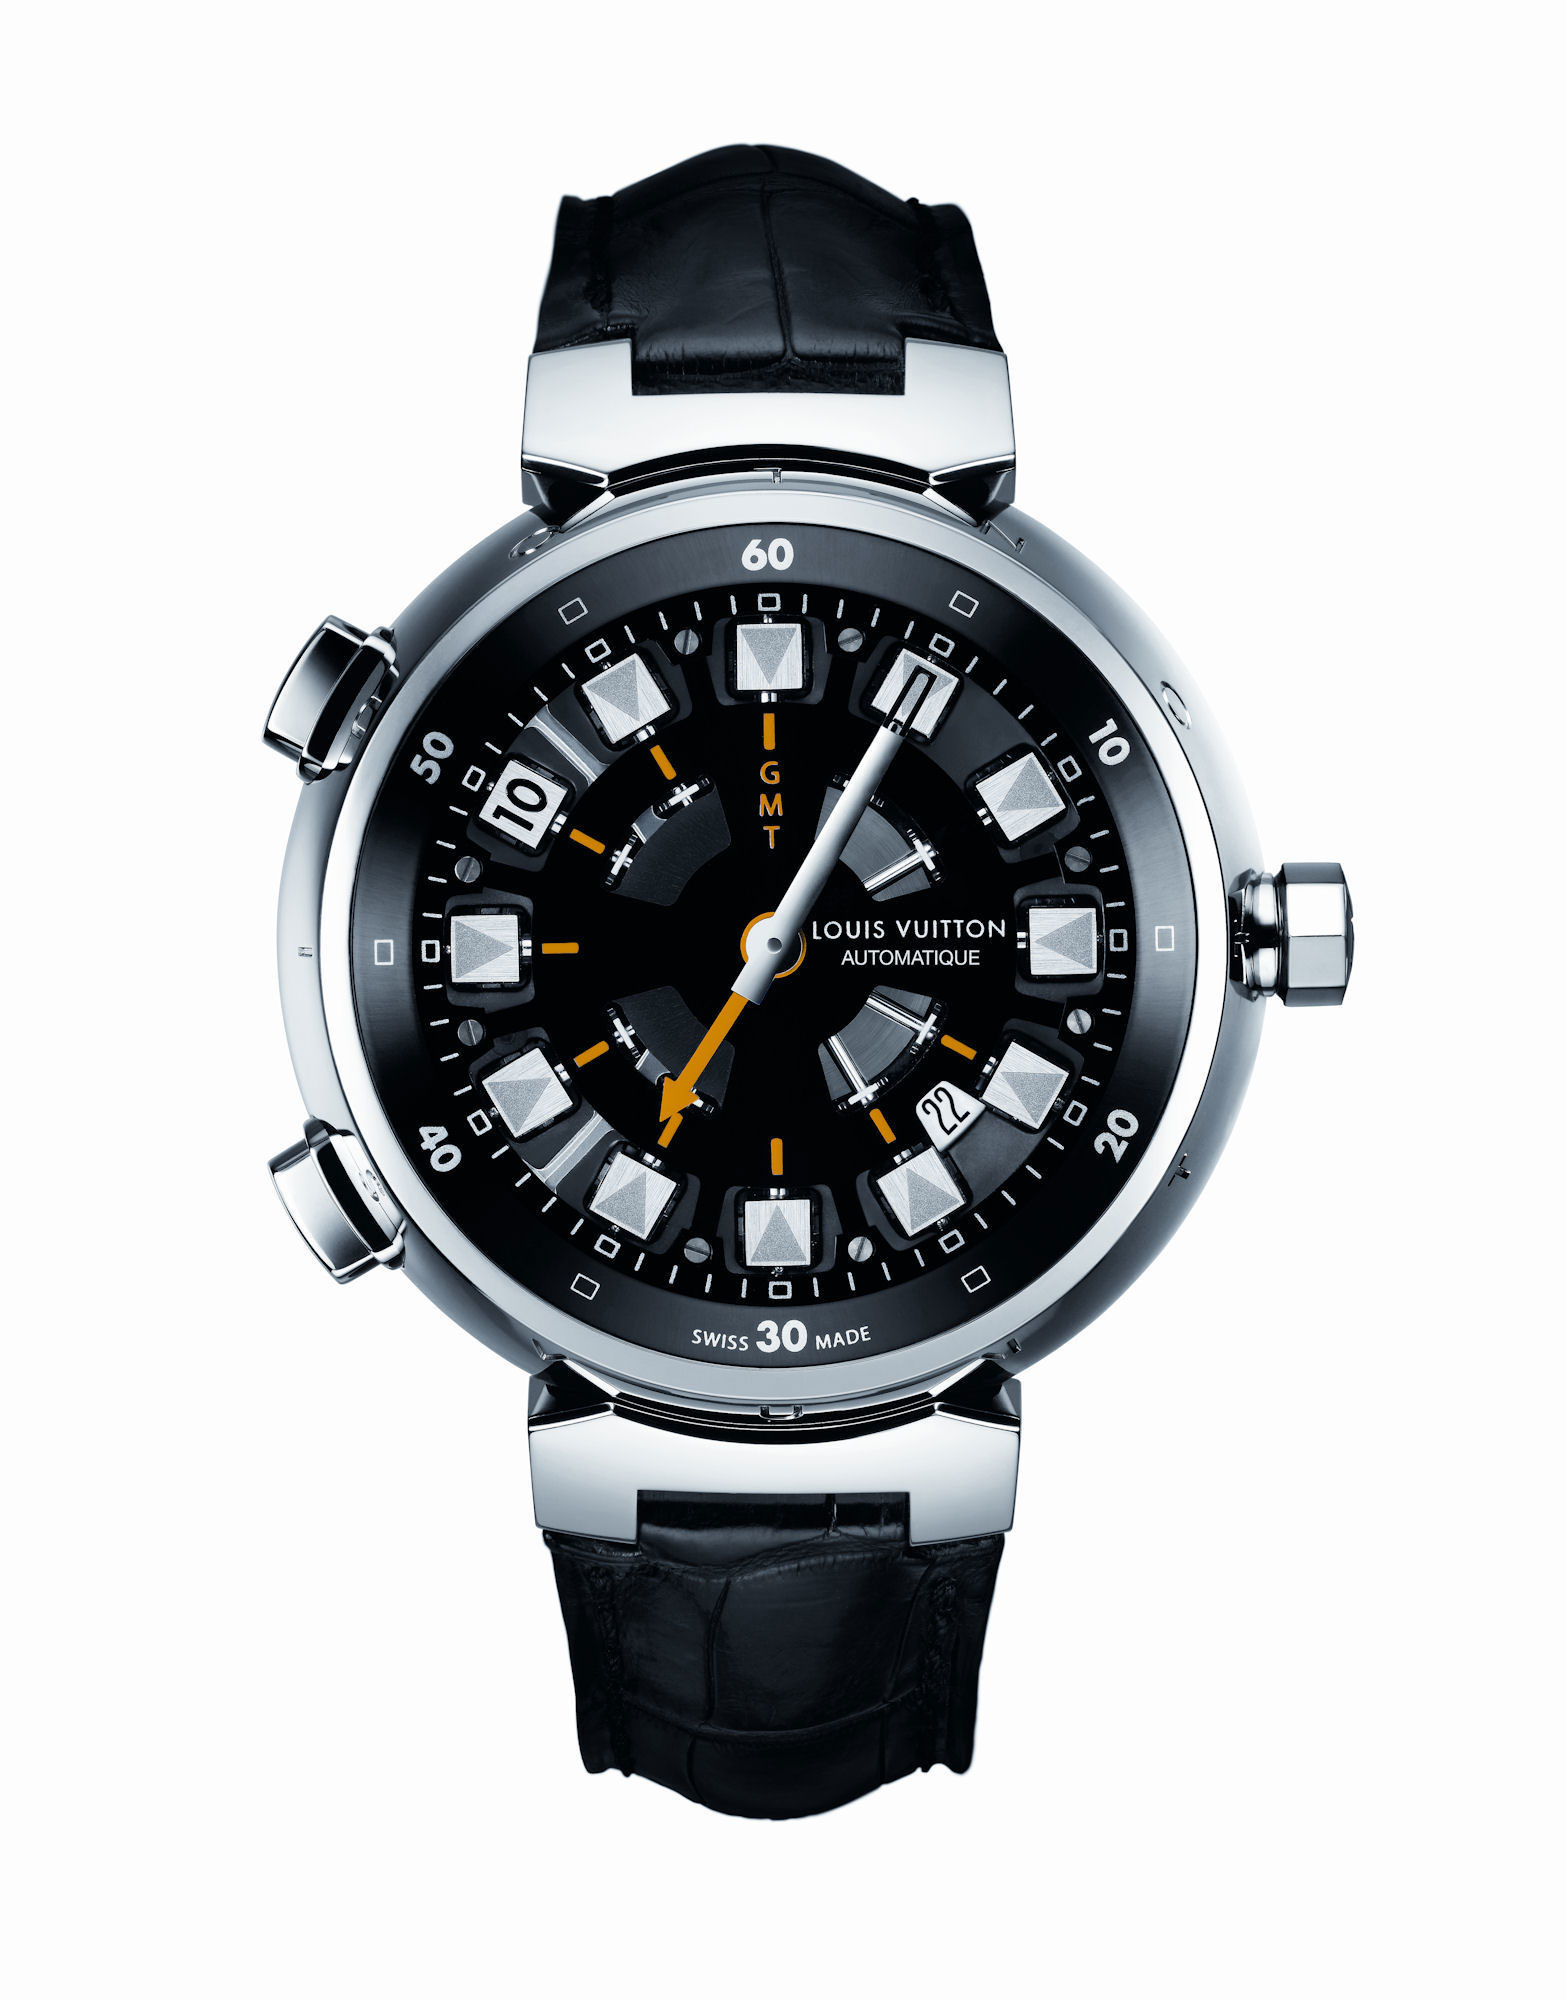 Louis Vuitton Tambour Spin Time Watch Collection &#8211; New Way of Reading the Time